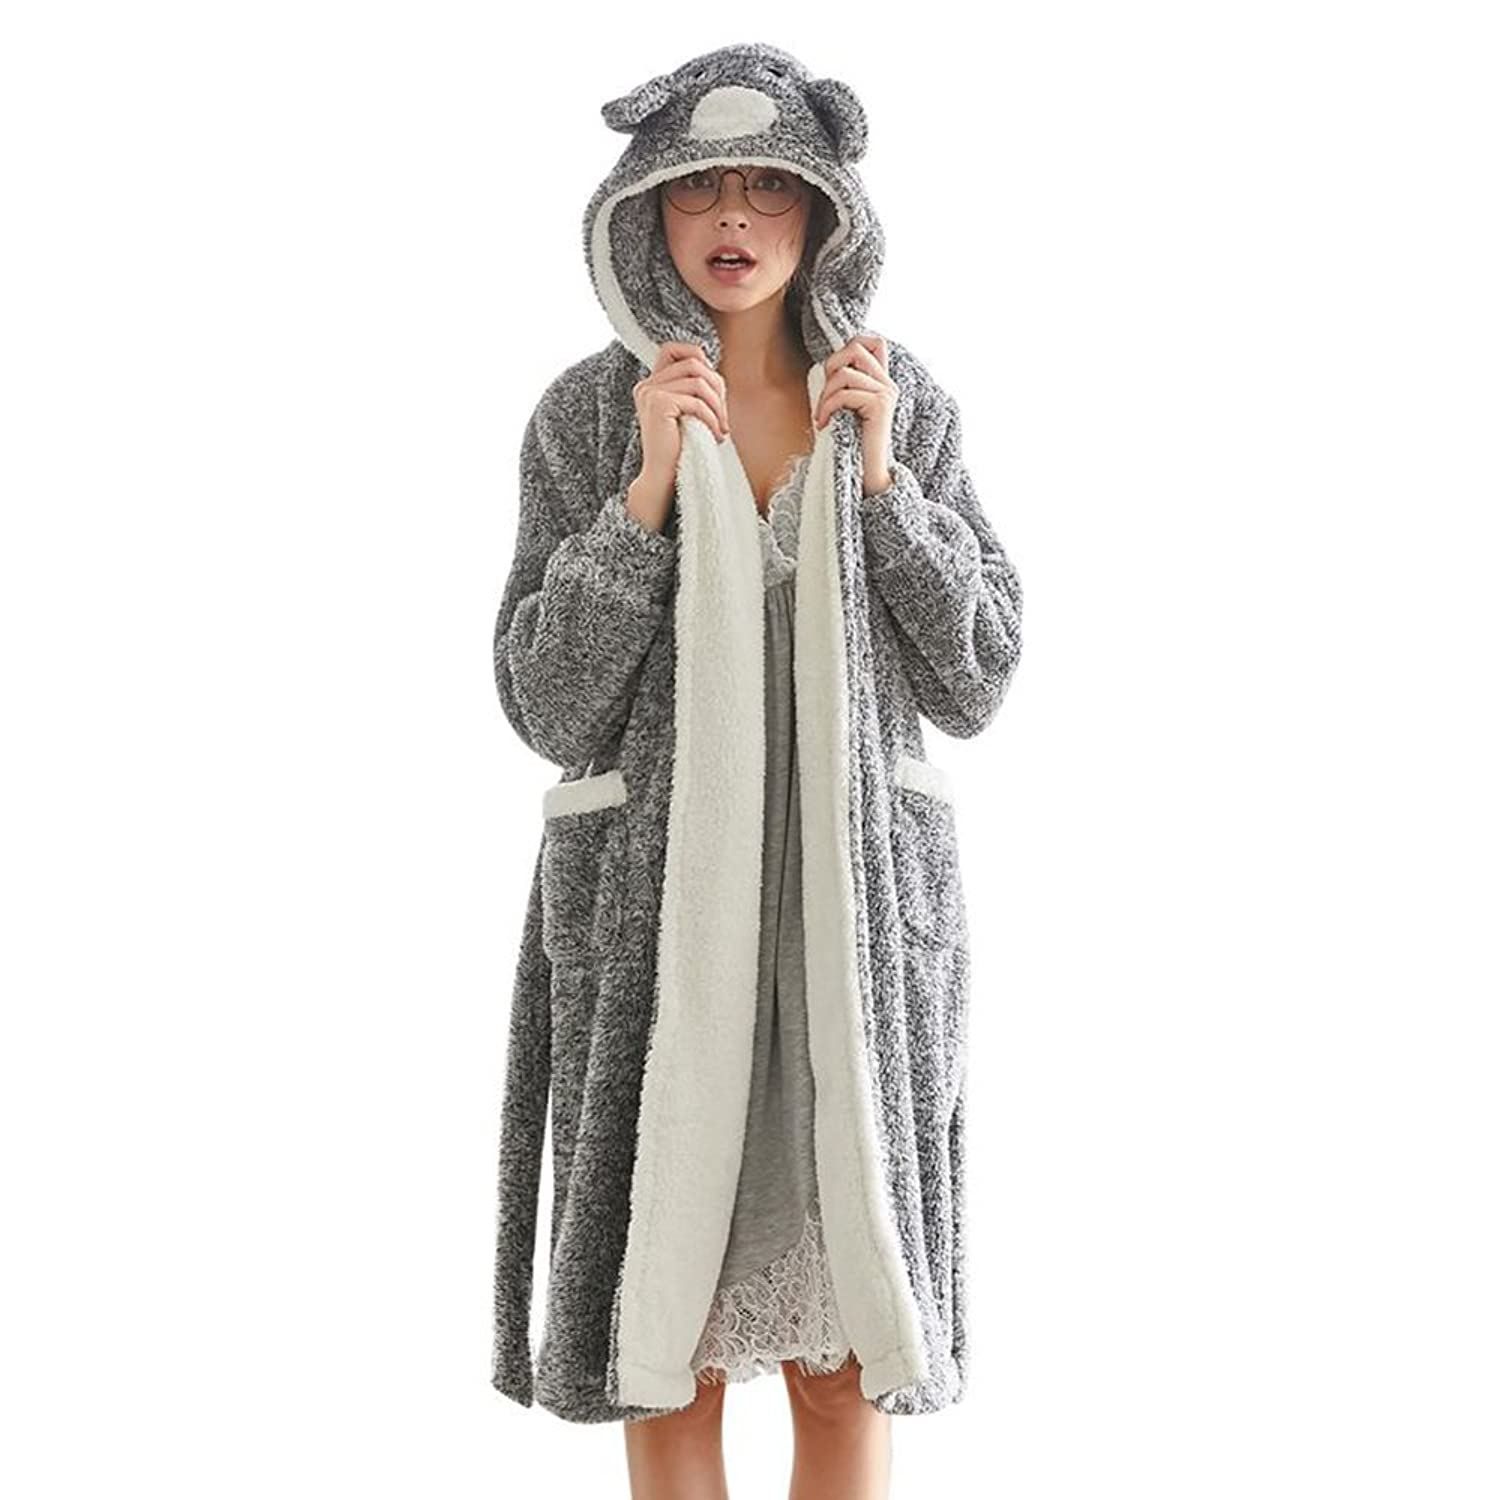 Women's Comfort Cotton Hooded Bath Robe